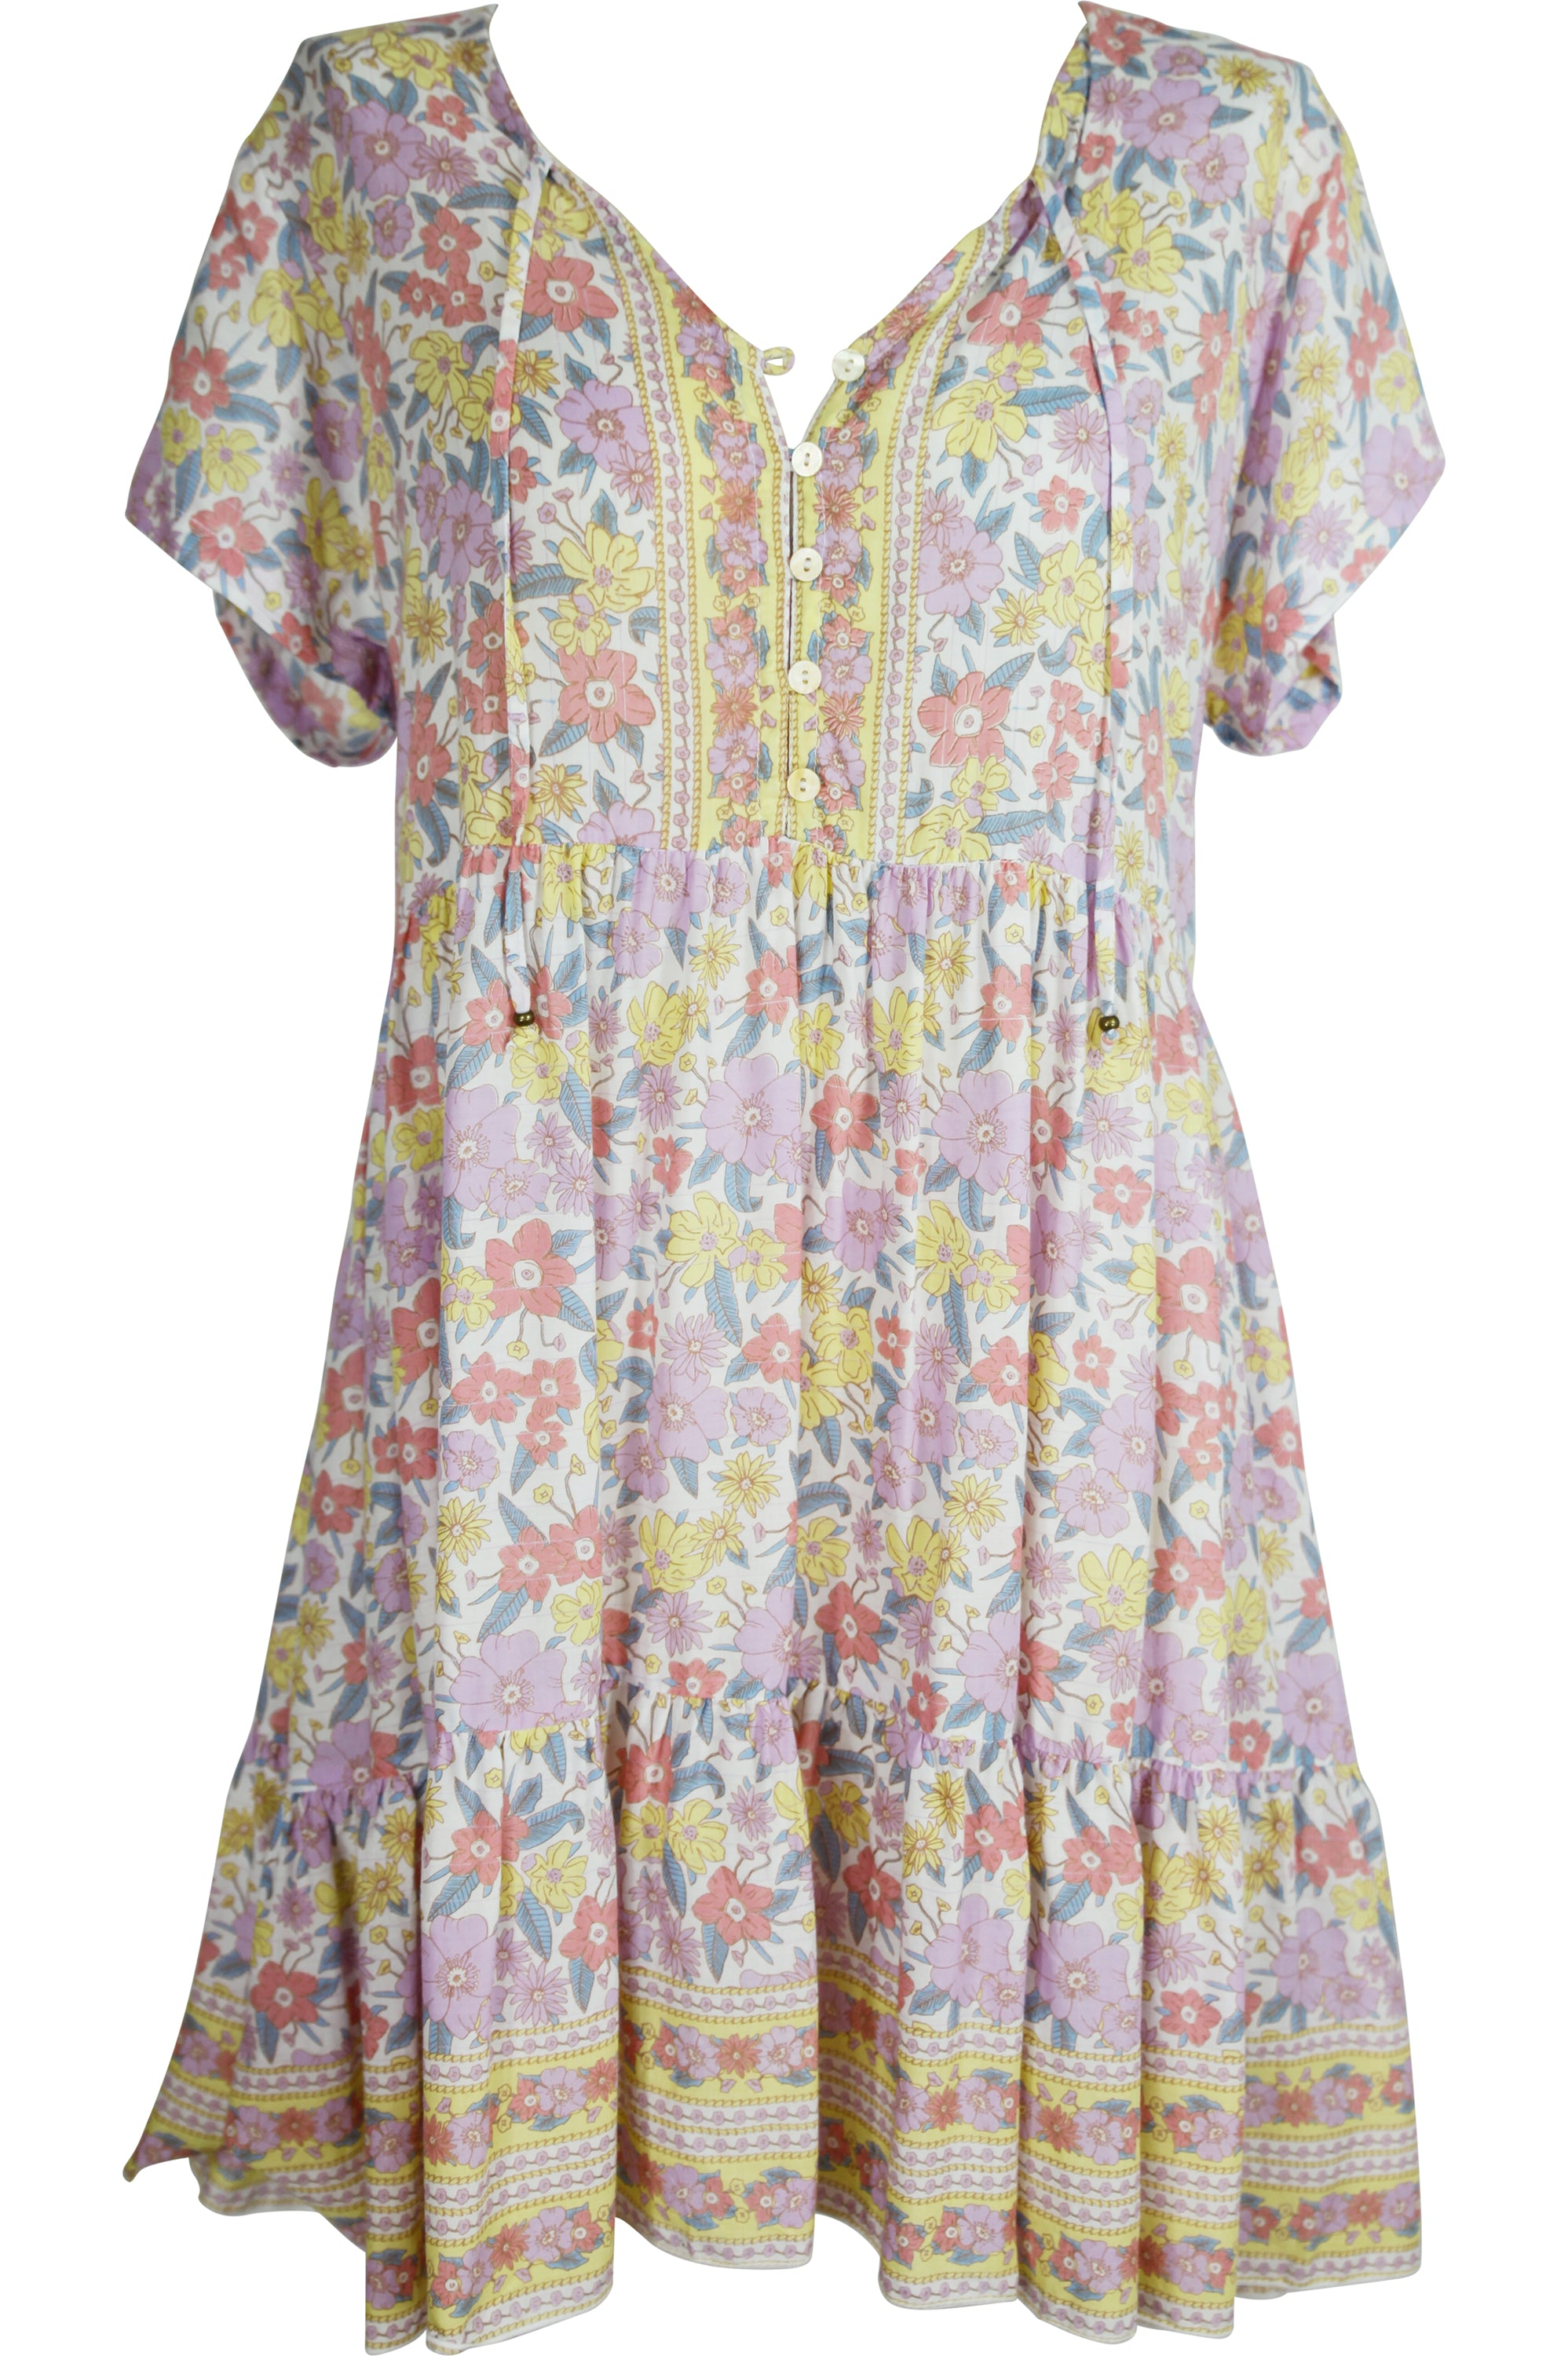 Juliette Dress 🌸 70's Floral Short - Saffron Road